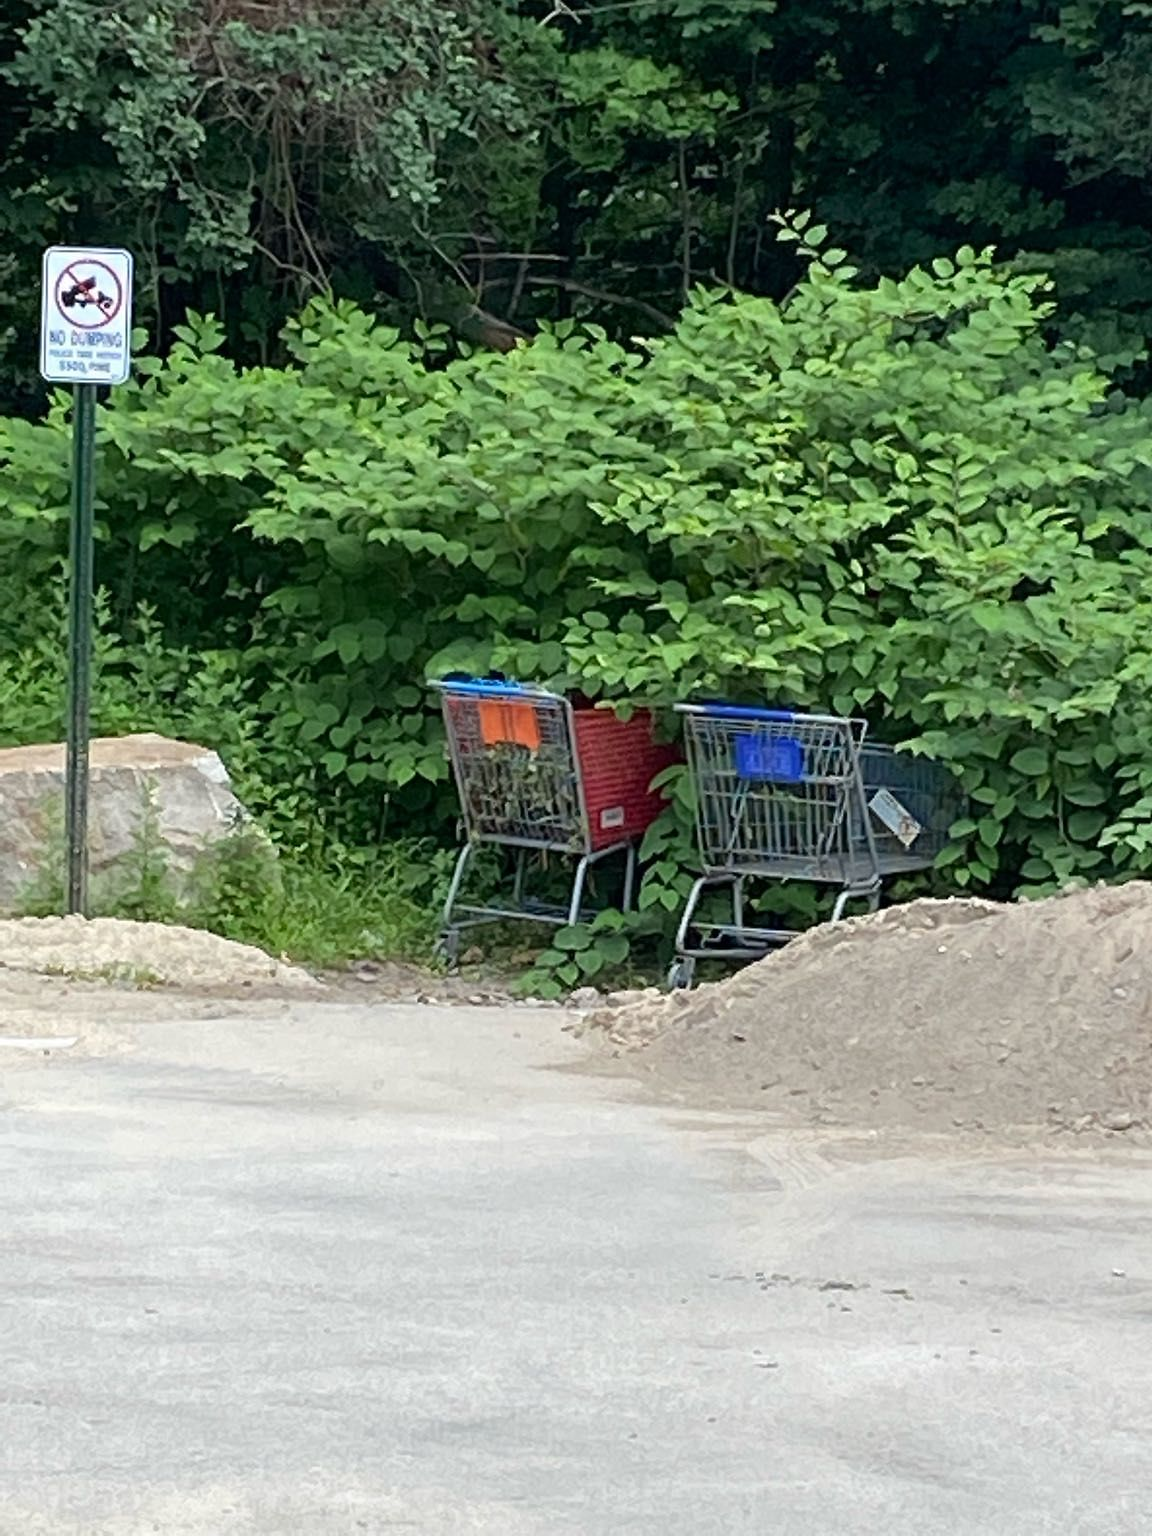 Abandoned shopping carts even though there is a no dumping sign posted. Please have both carts picked up.